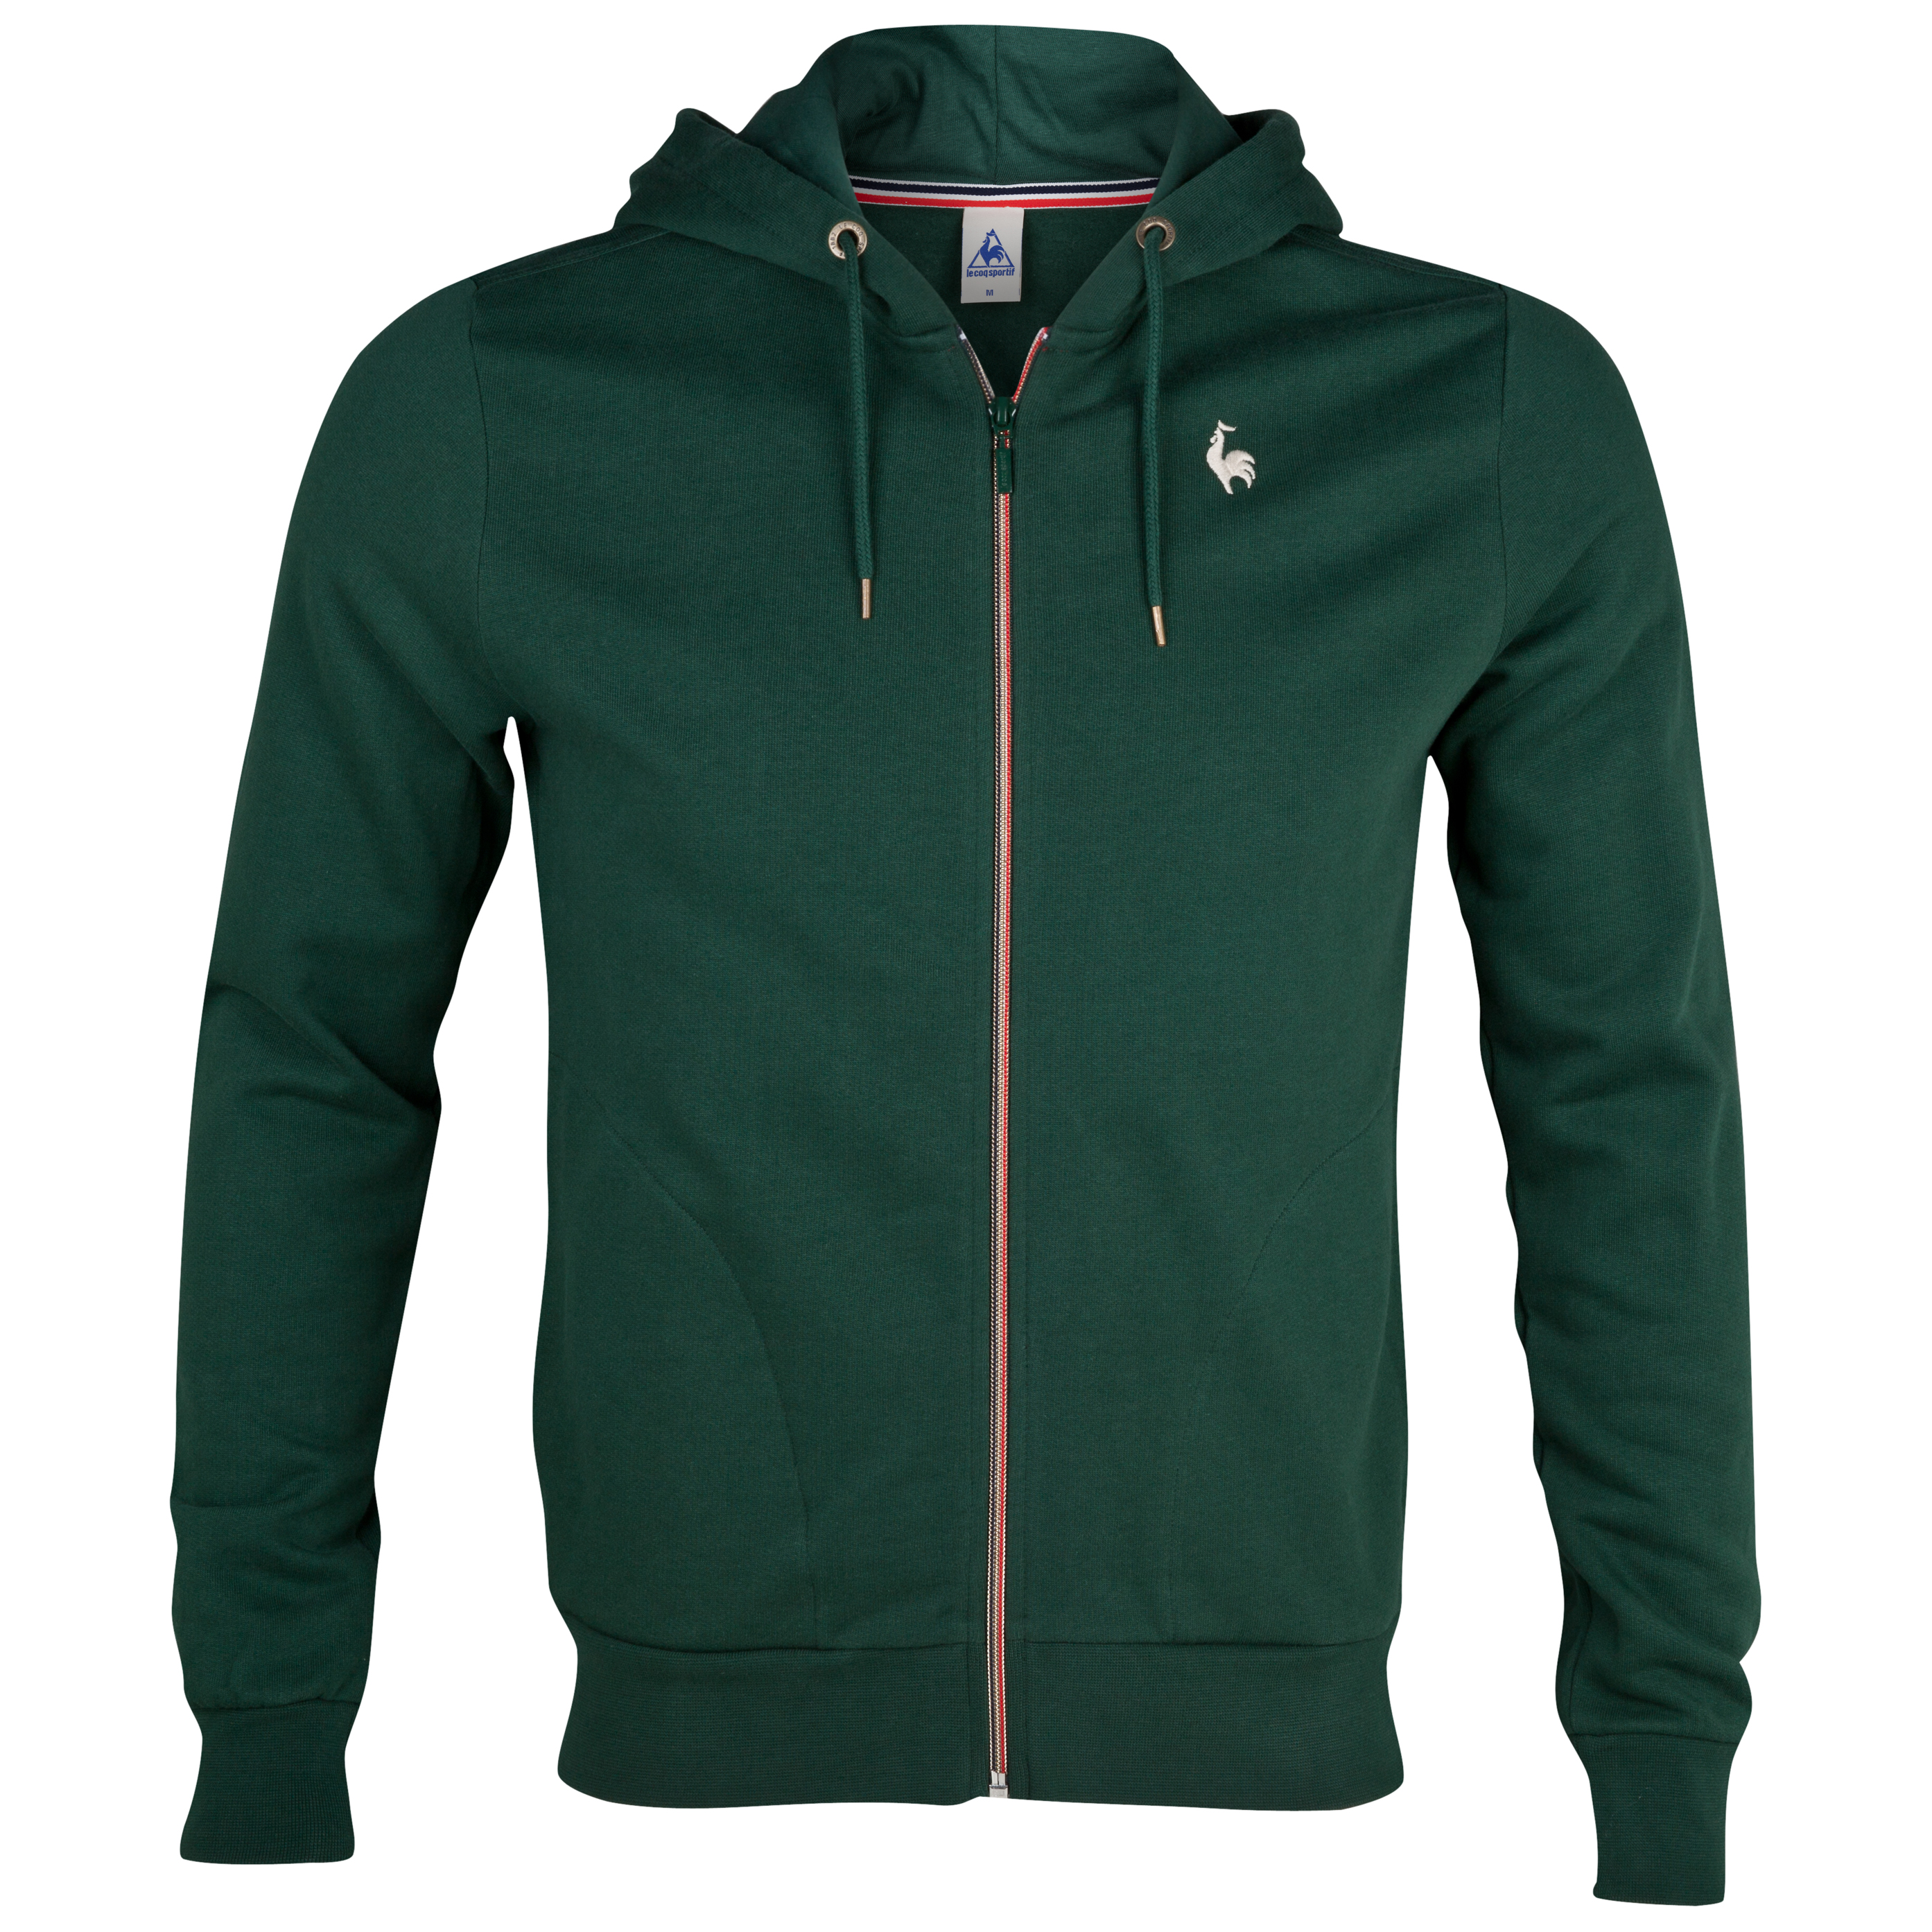 Le Coq Sportif  Full Zip Hooded Sweatshirt - Green Court